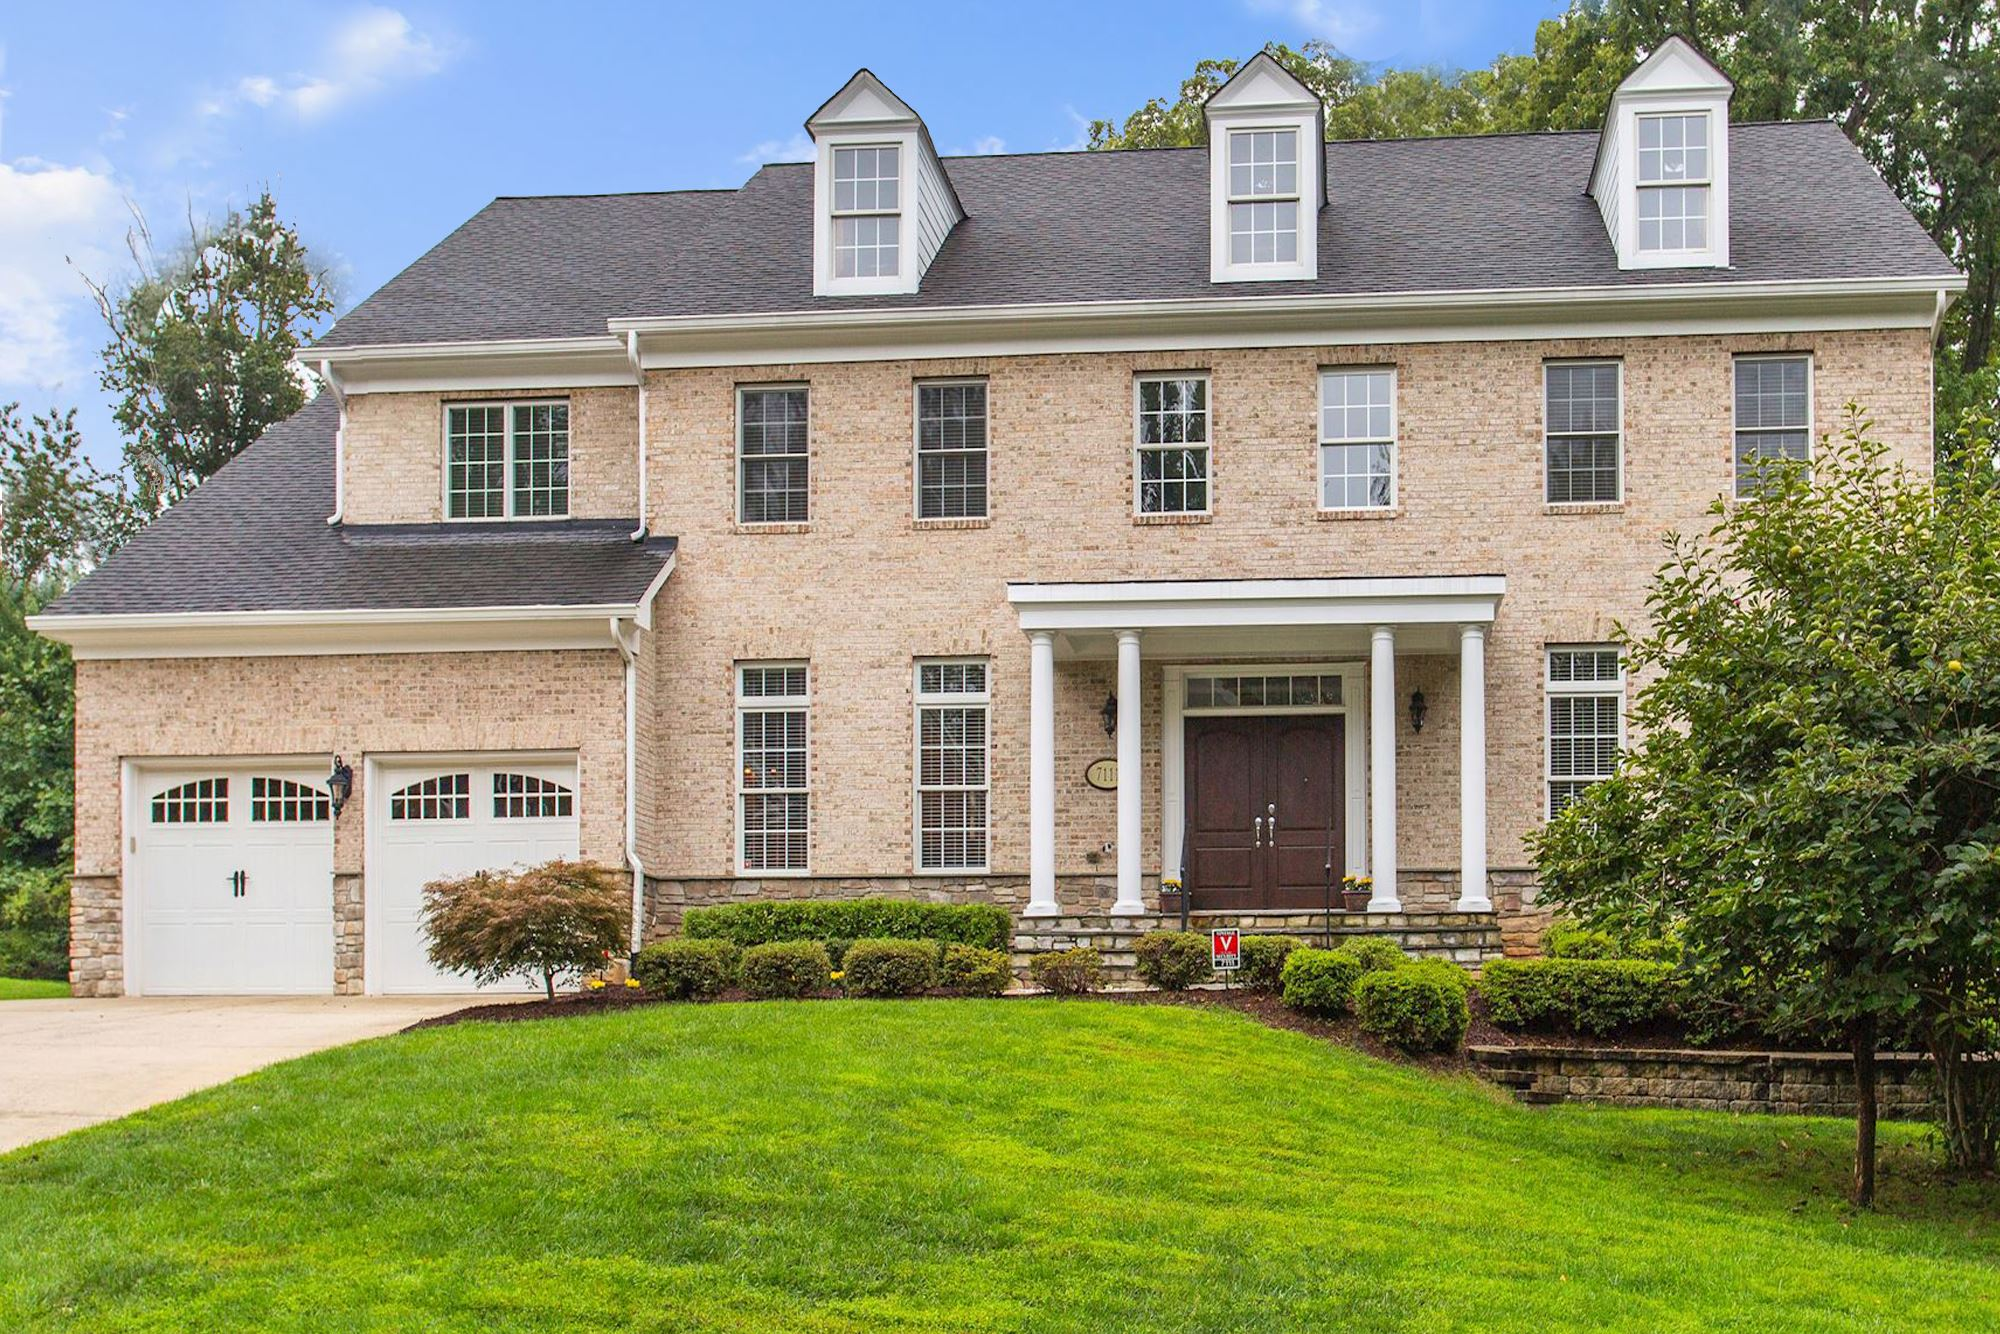 SOLD: Grand Estate in Springfield With Custom Upgrades